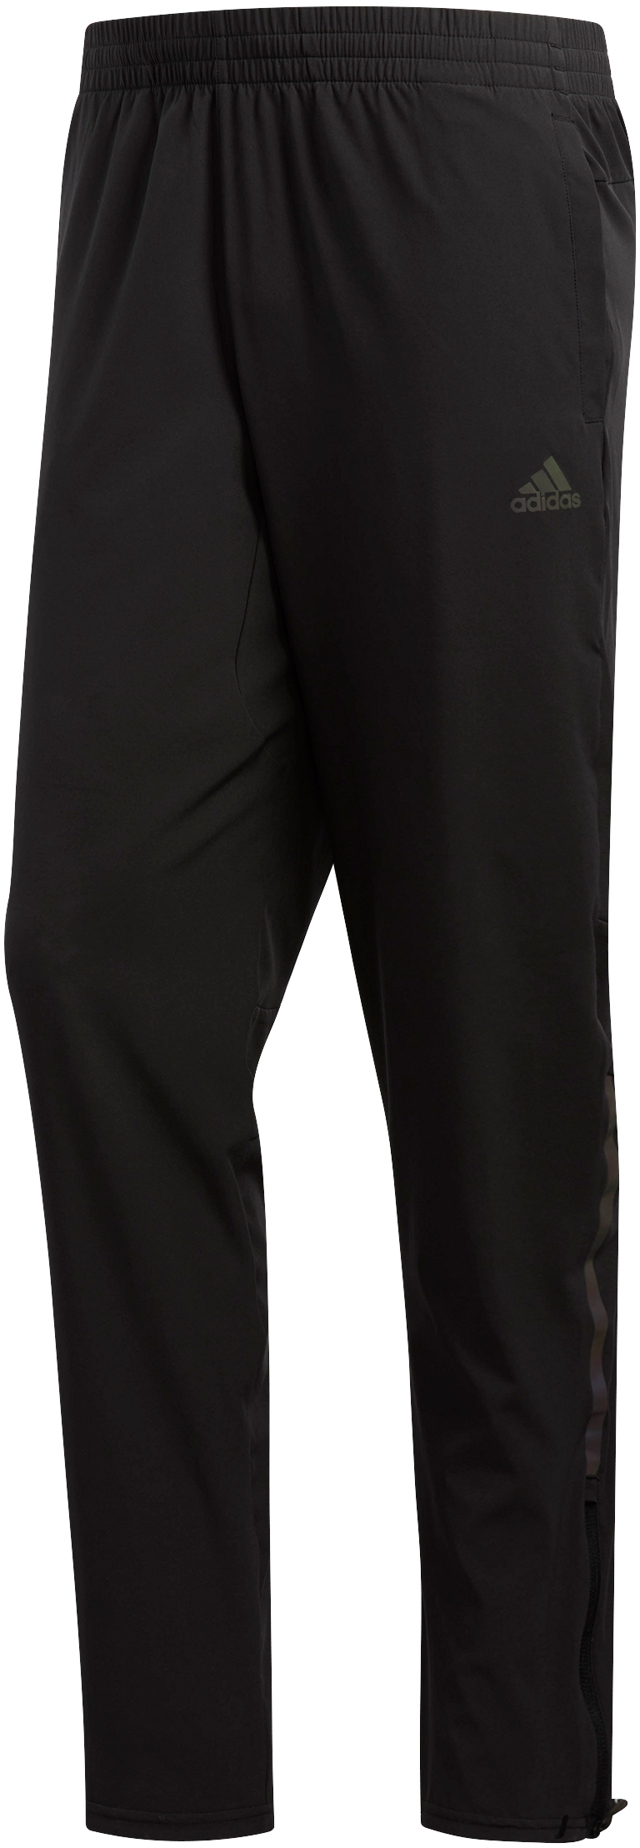 adidas Astro Pant | Trousers